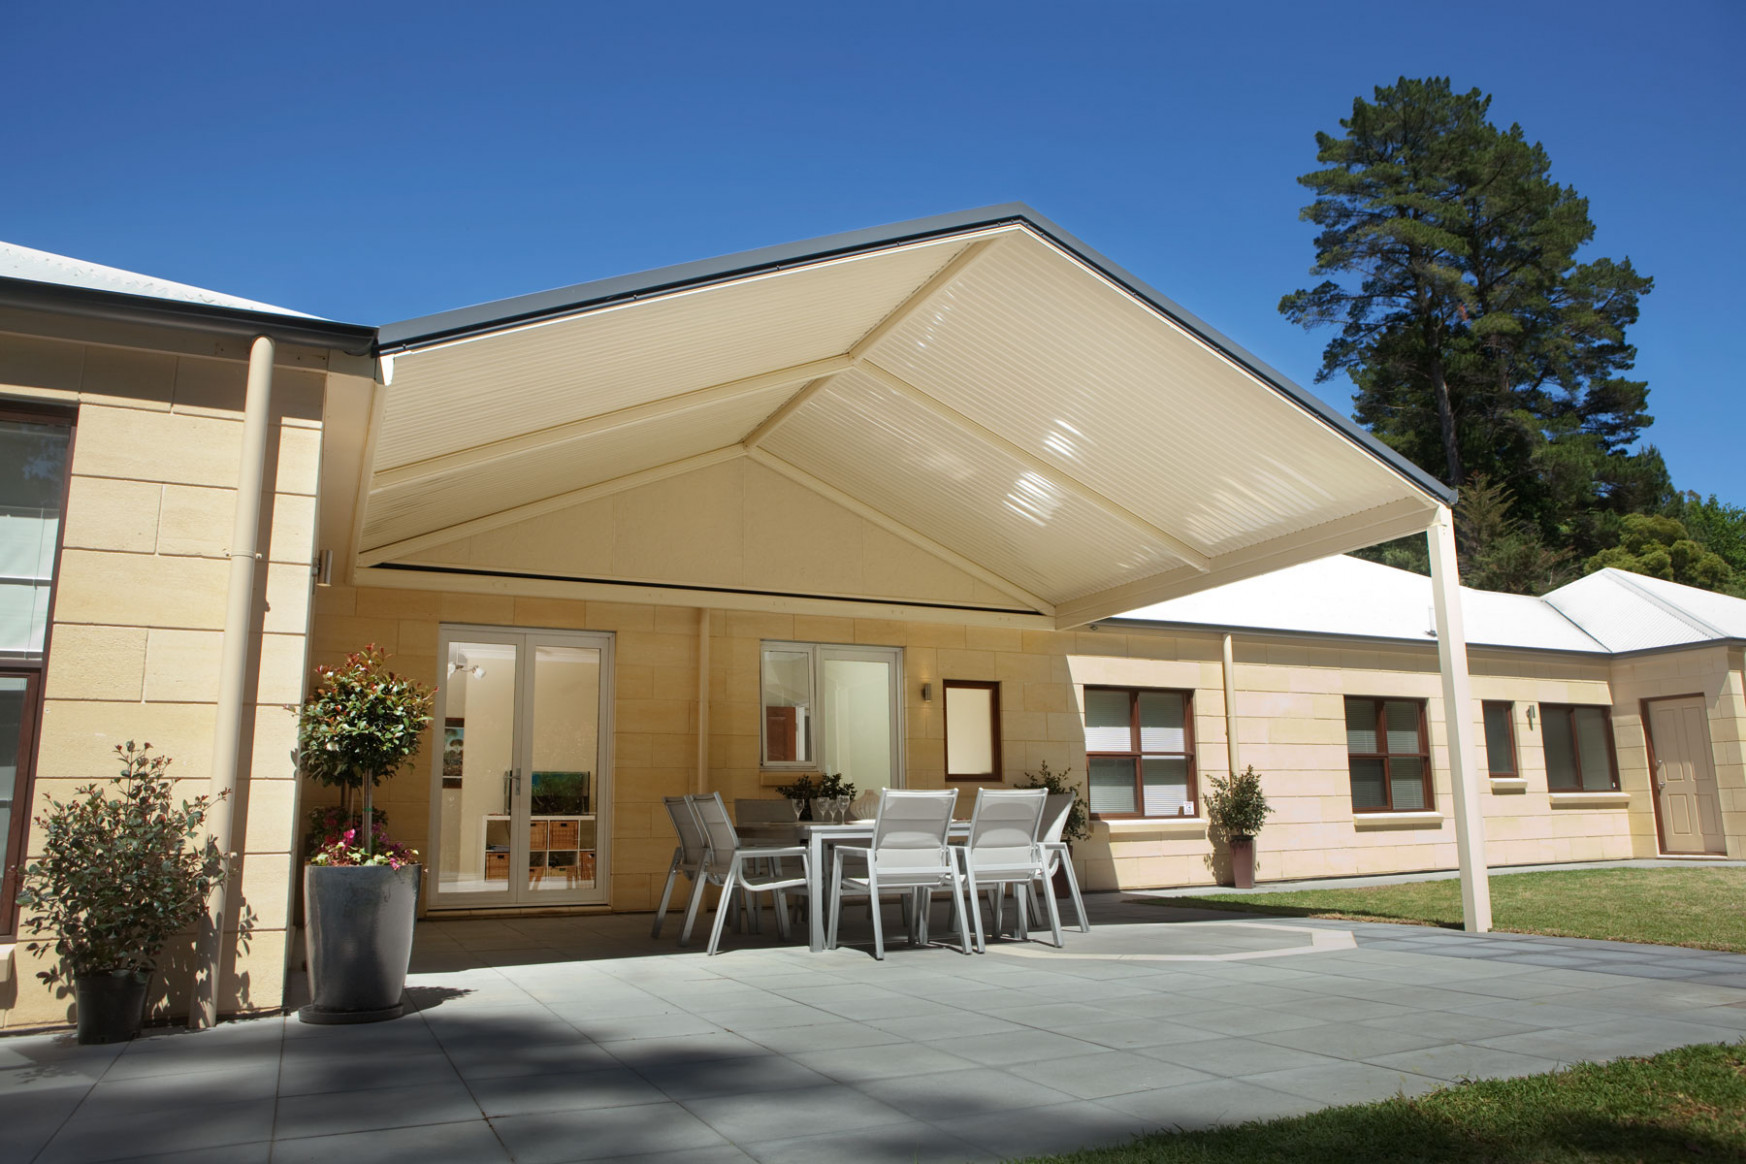 Outback® Gable | Stratco Gable Roof Carports Sydney